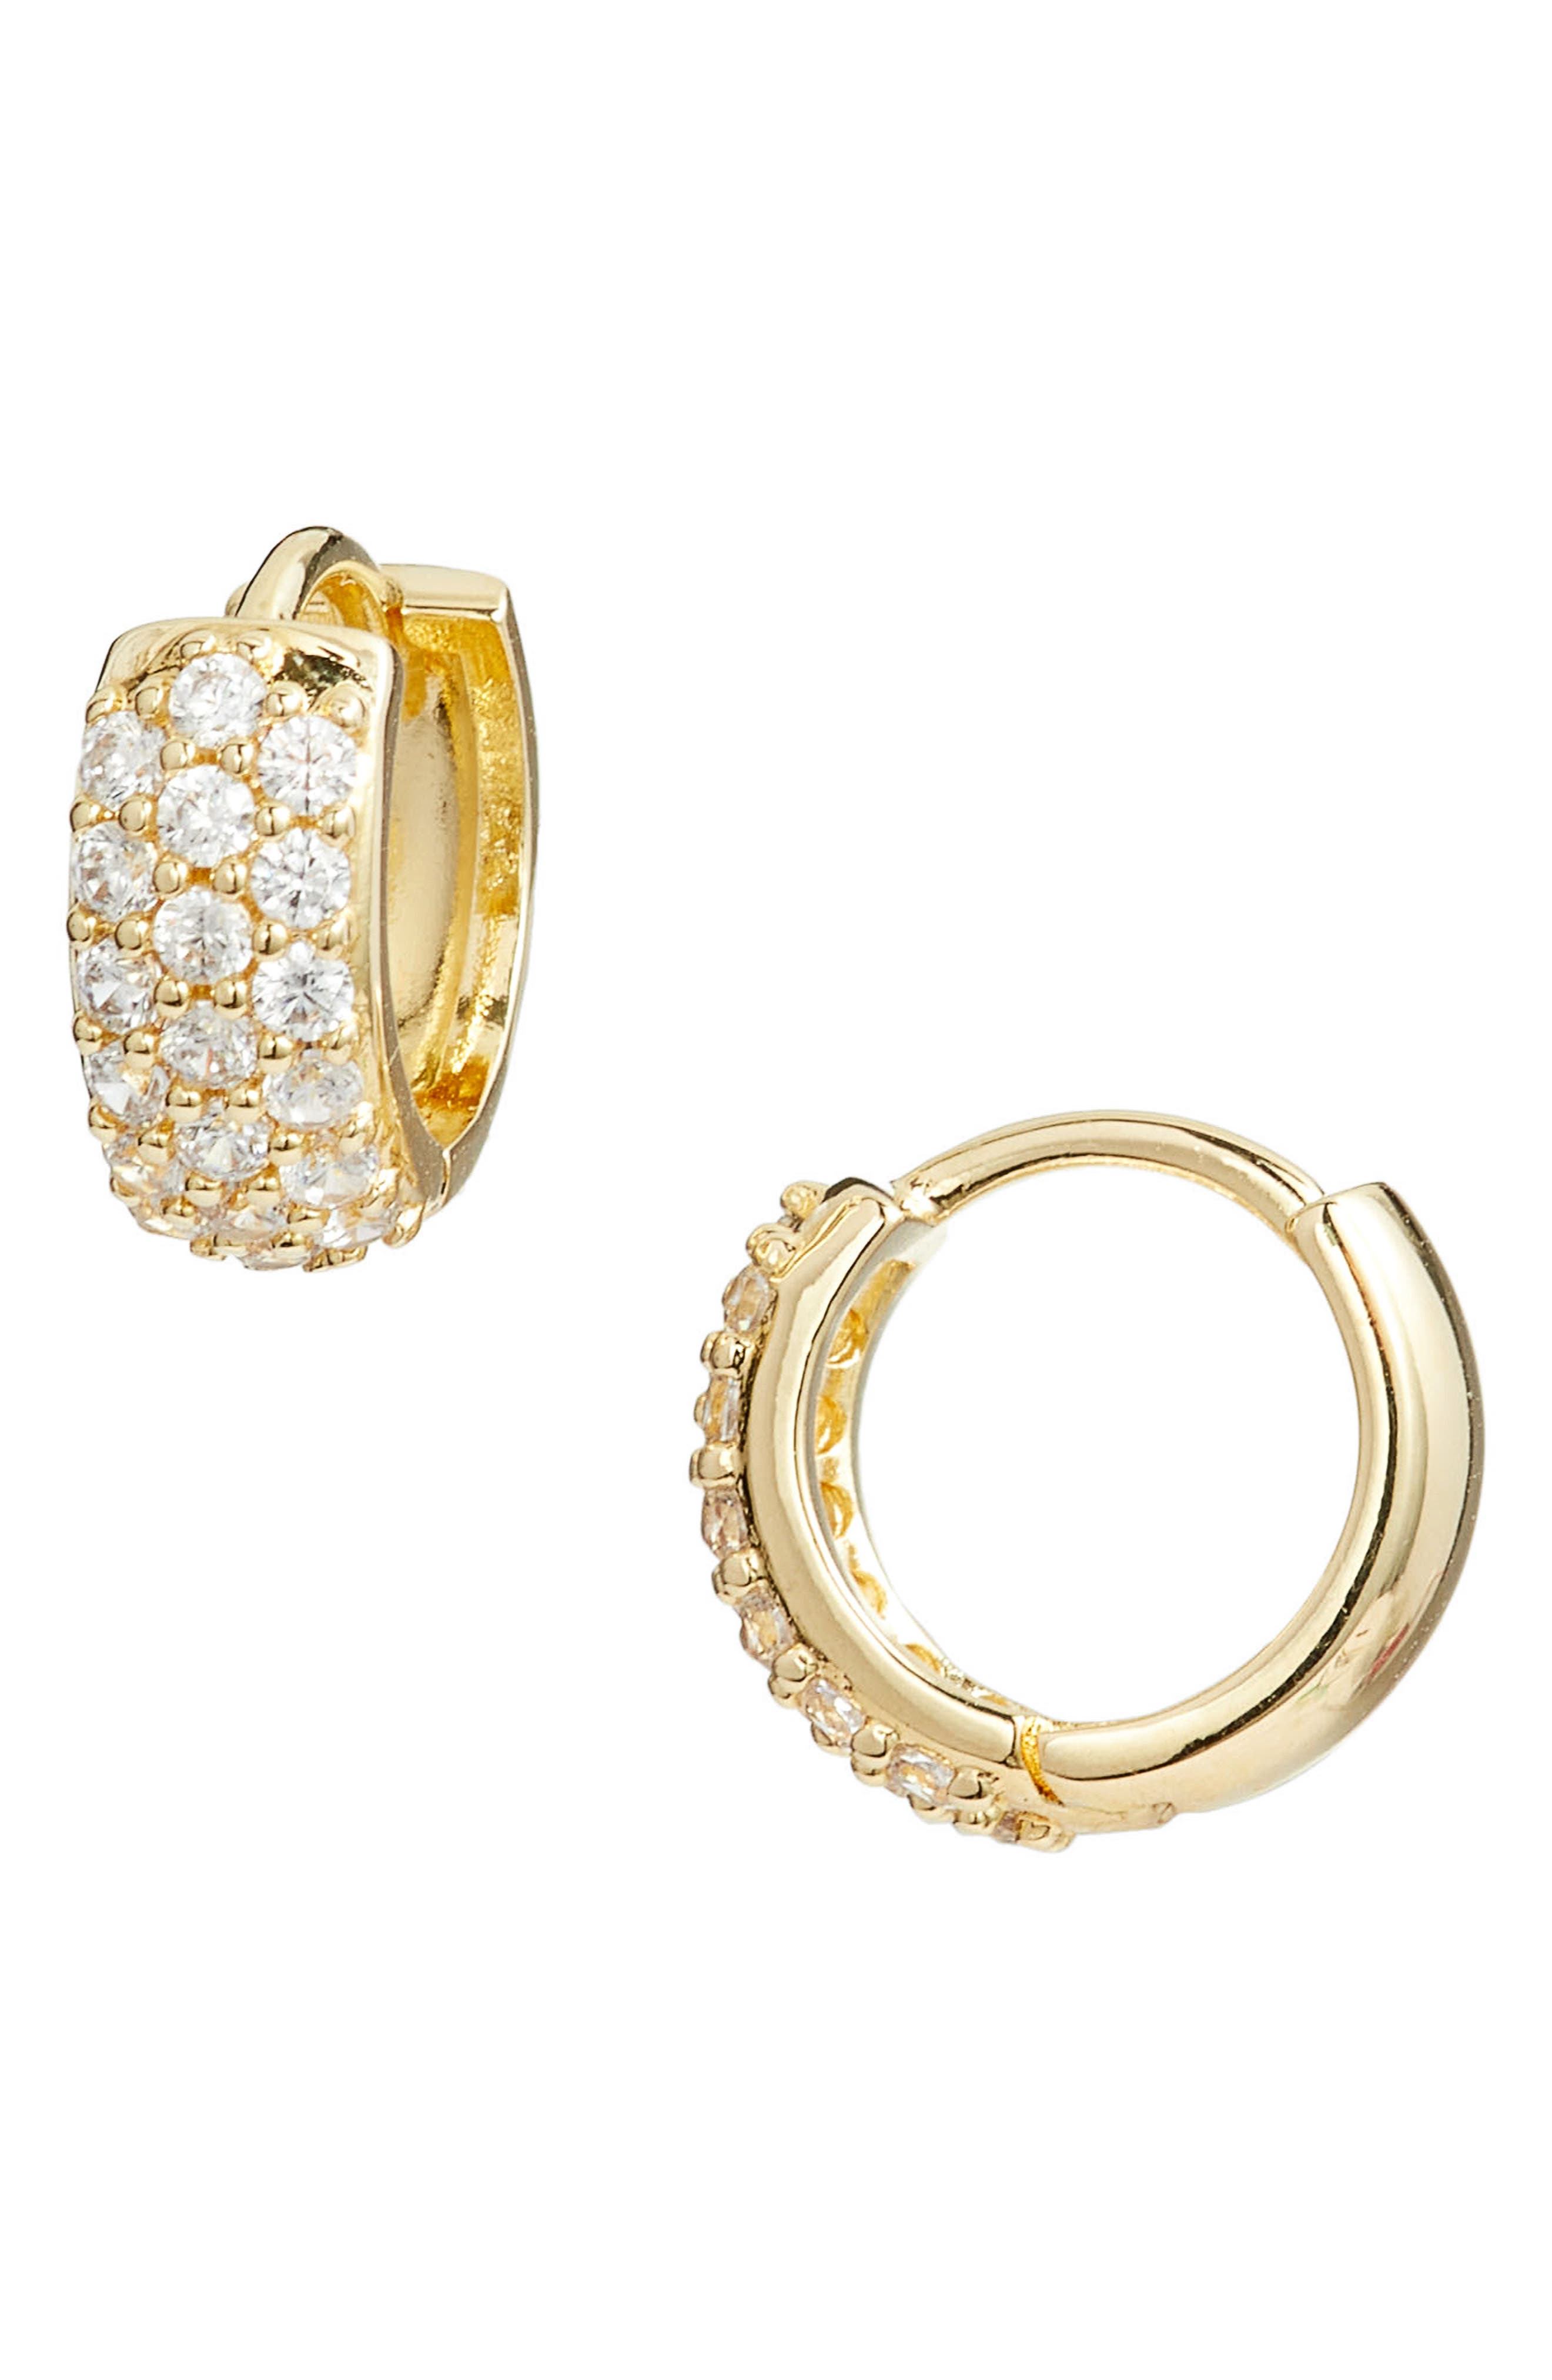 Pavé Wide Hinge Huggie Earrings,                             Main thumbnail 1, color,                             CLEAR- GOLD